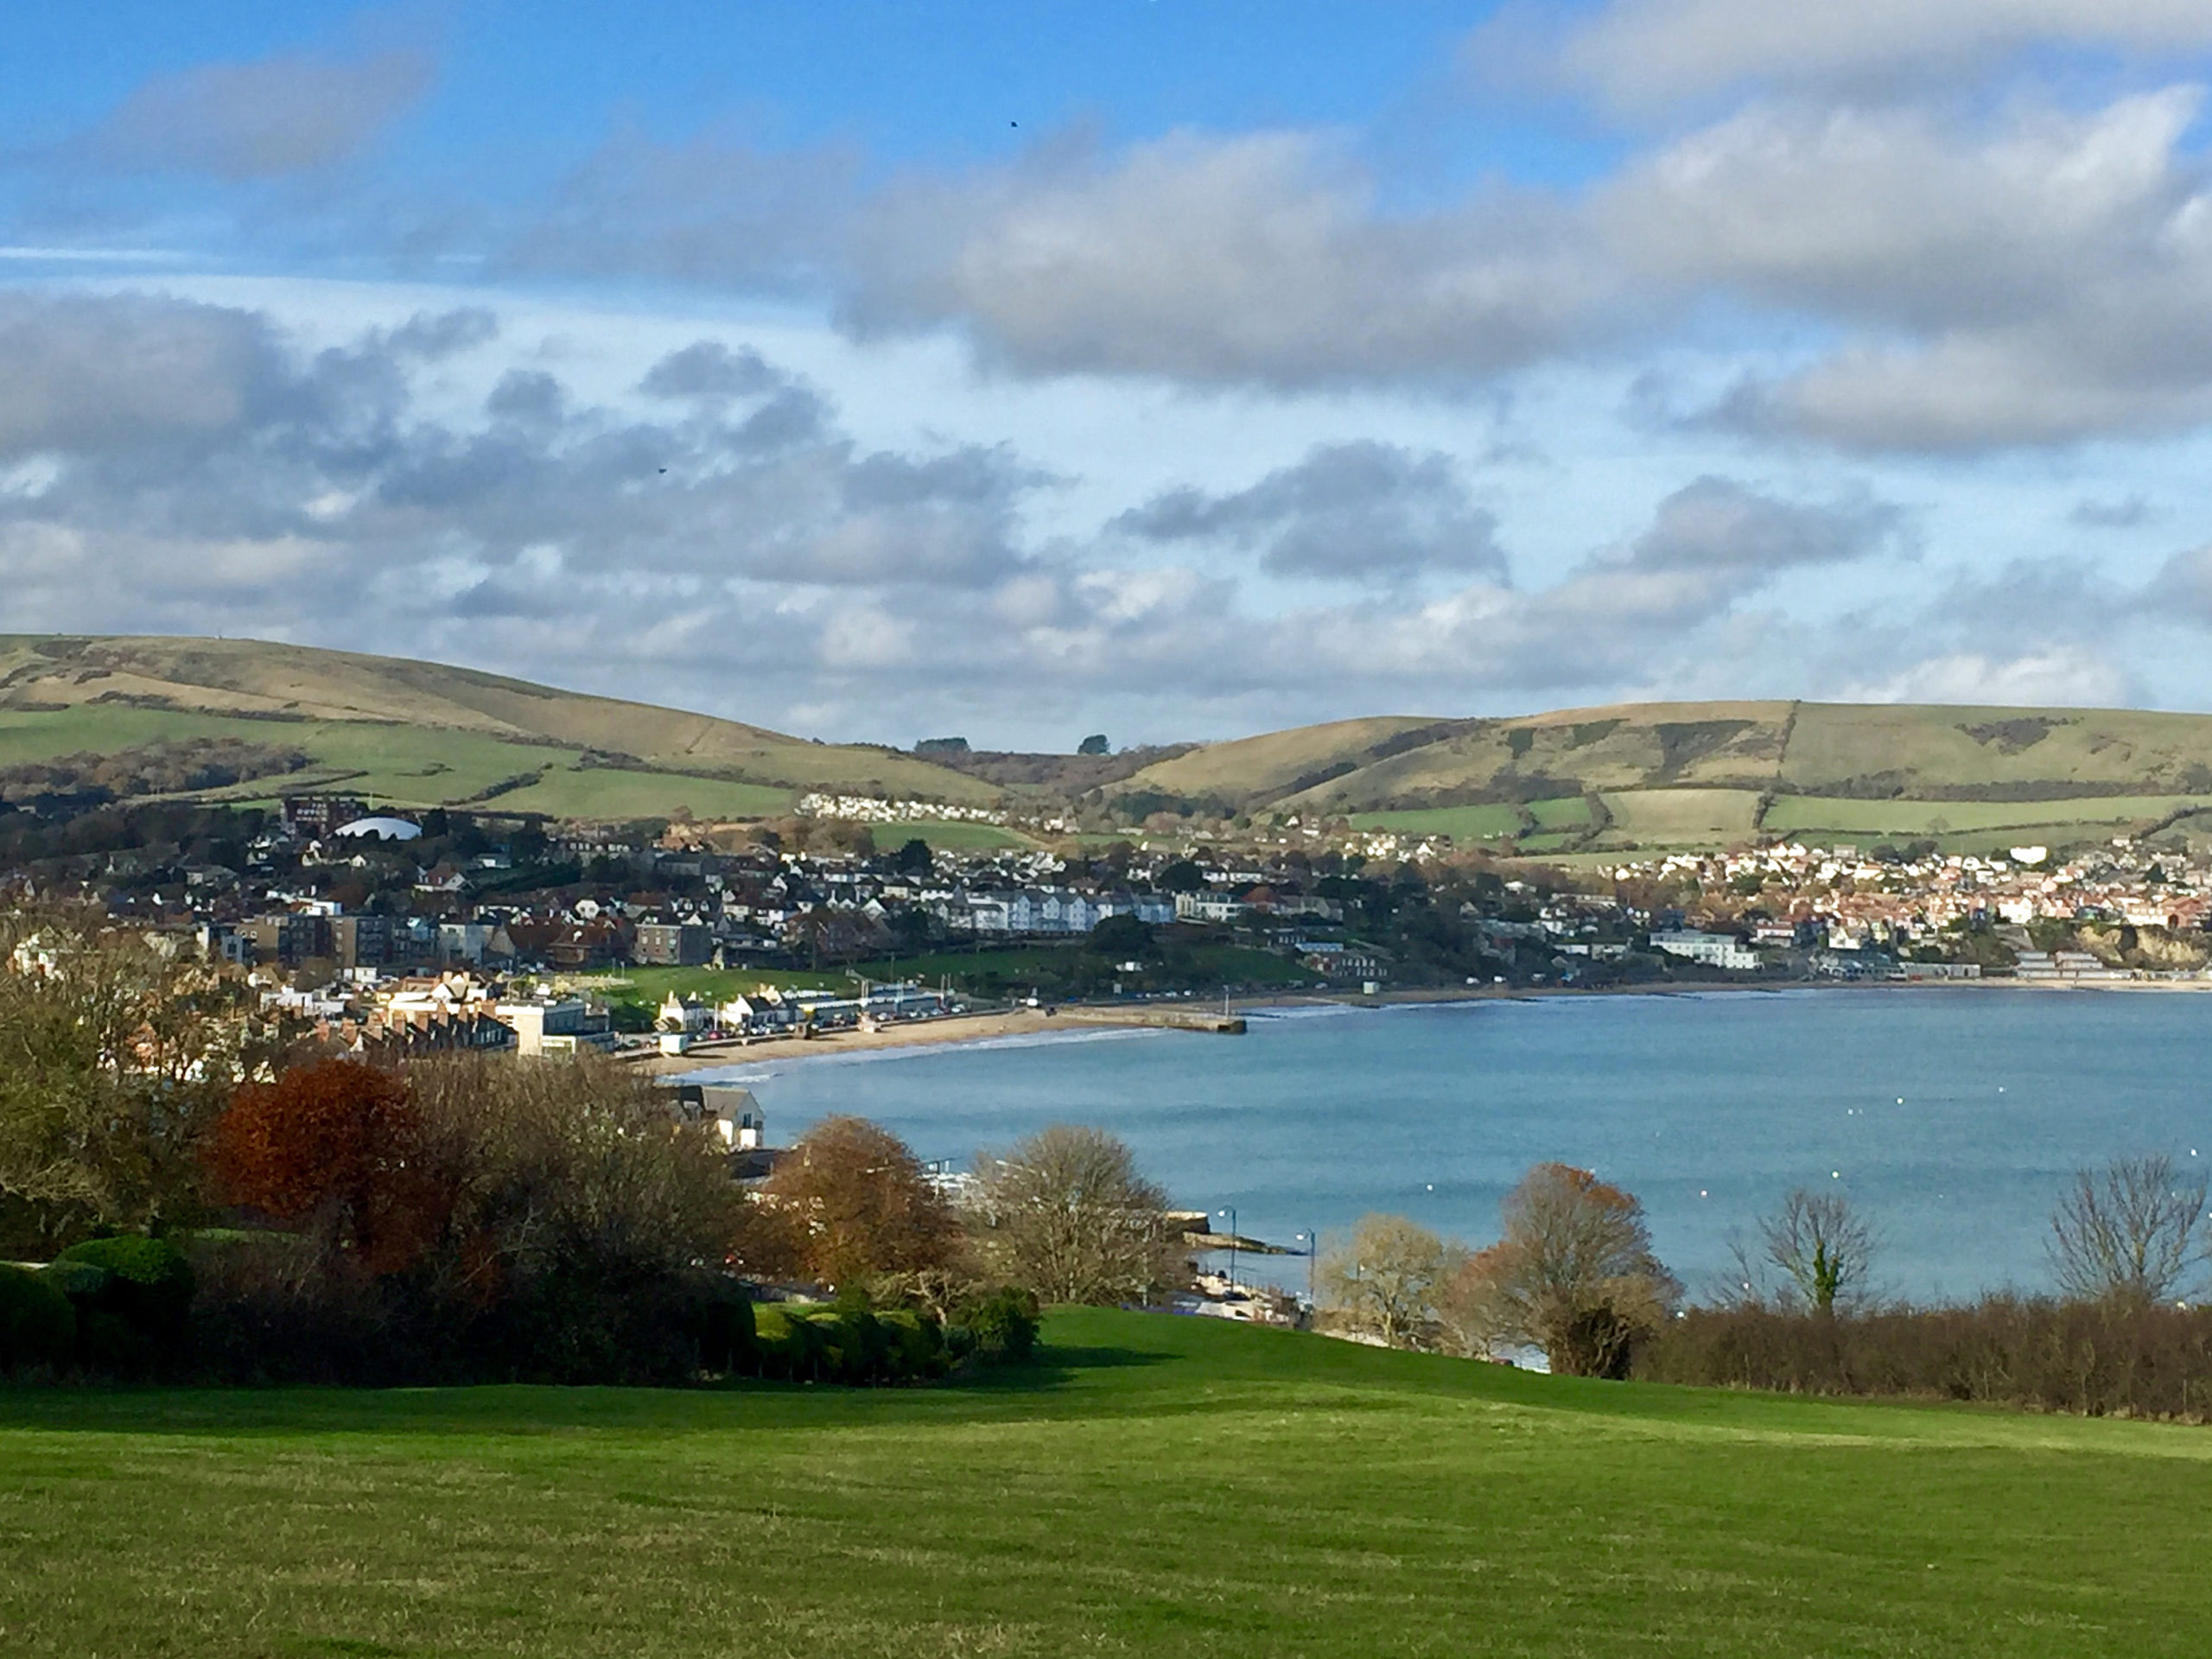 Swanage Bay viewed from the Downs